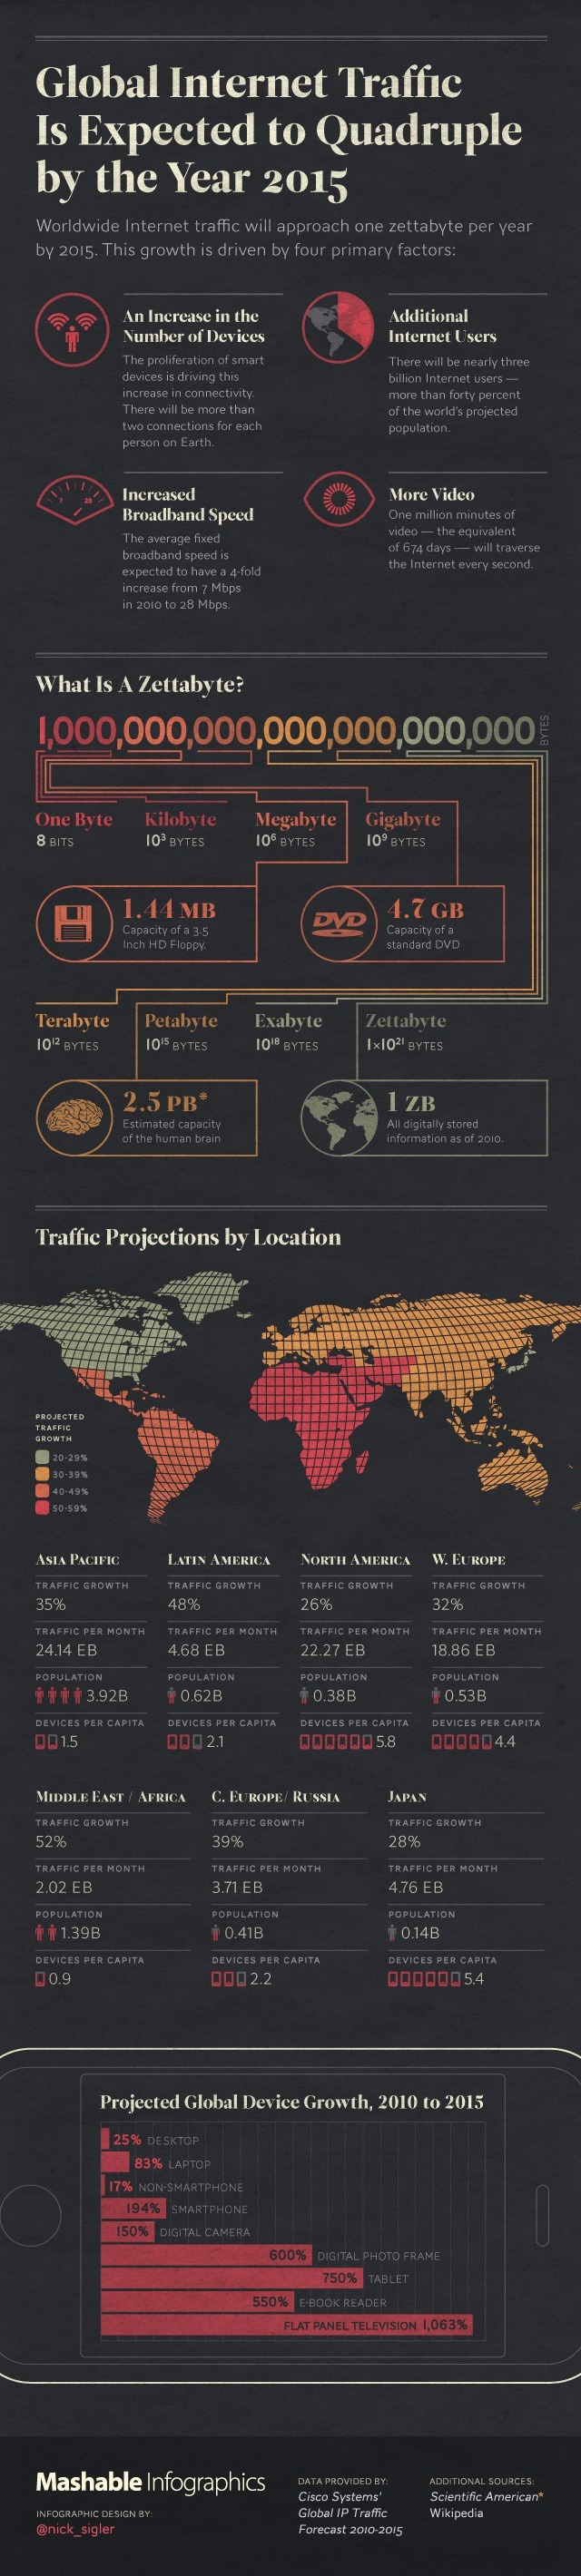 Global internet traffic is expected to quadruple by the year 2015